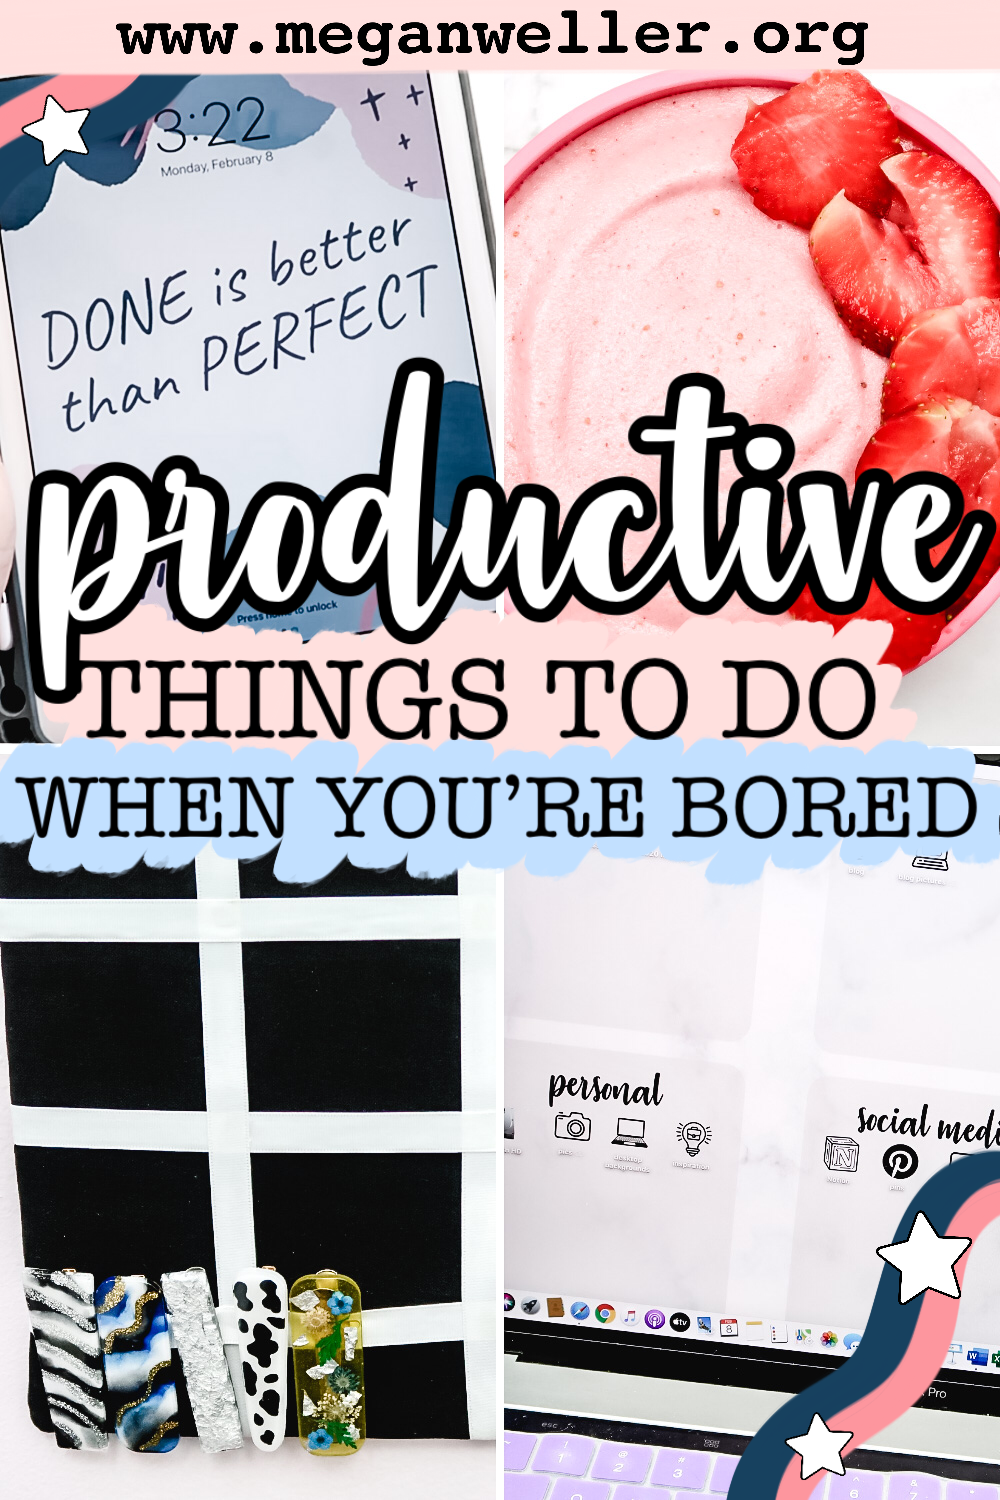 Productive things to do when you're bored. How to organize your desktop. Crafts to make with cardboard. How to organize your iPad. How to make a smoothie bowl.